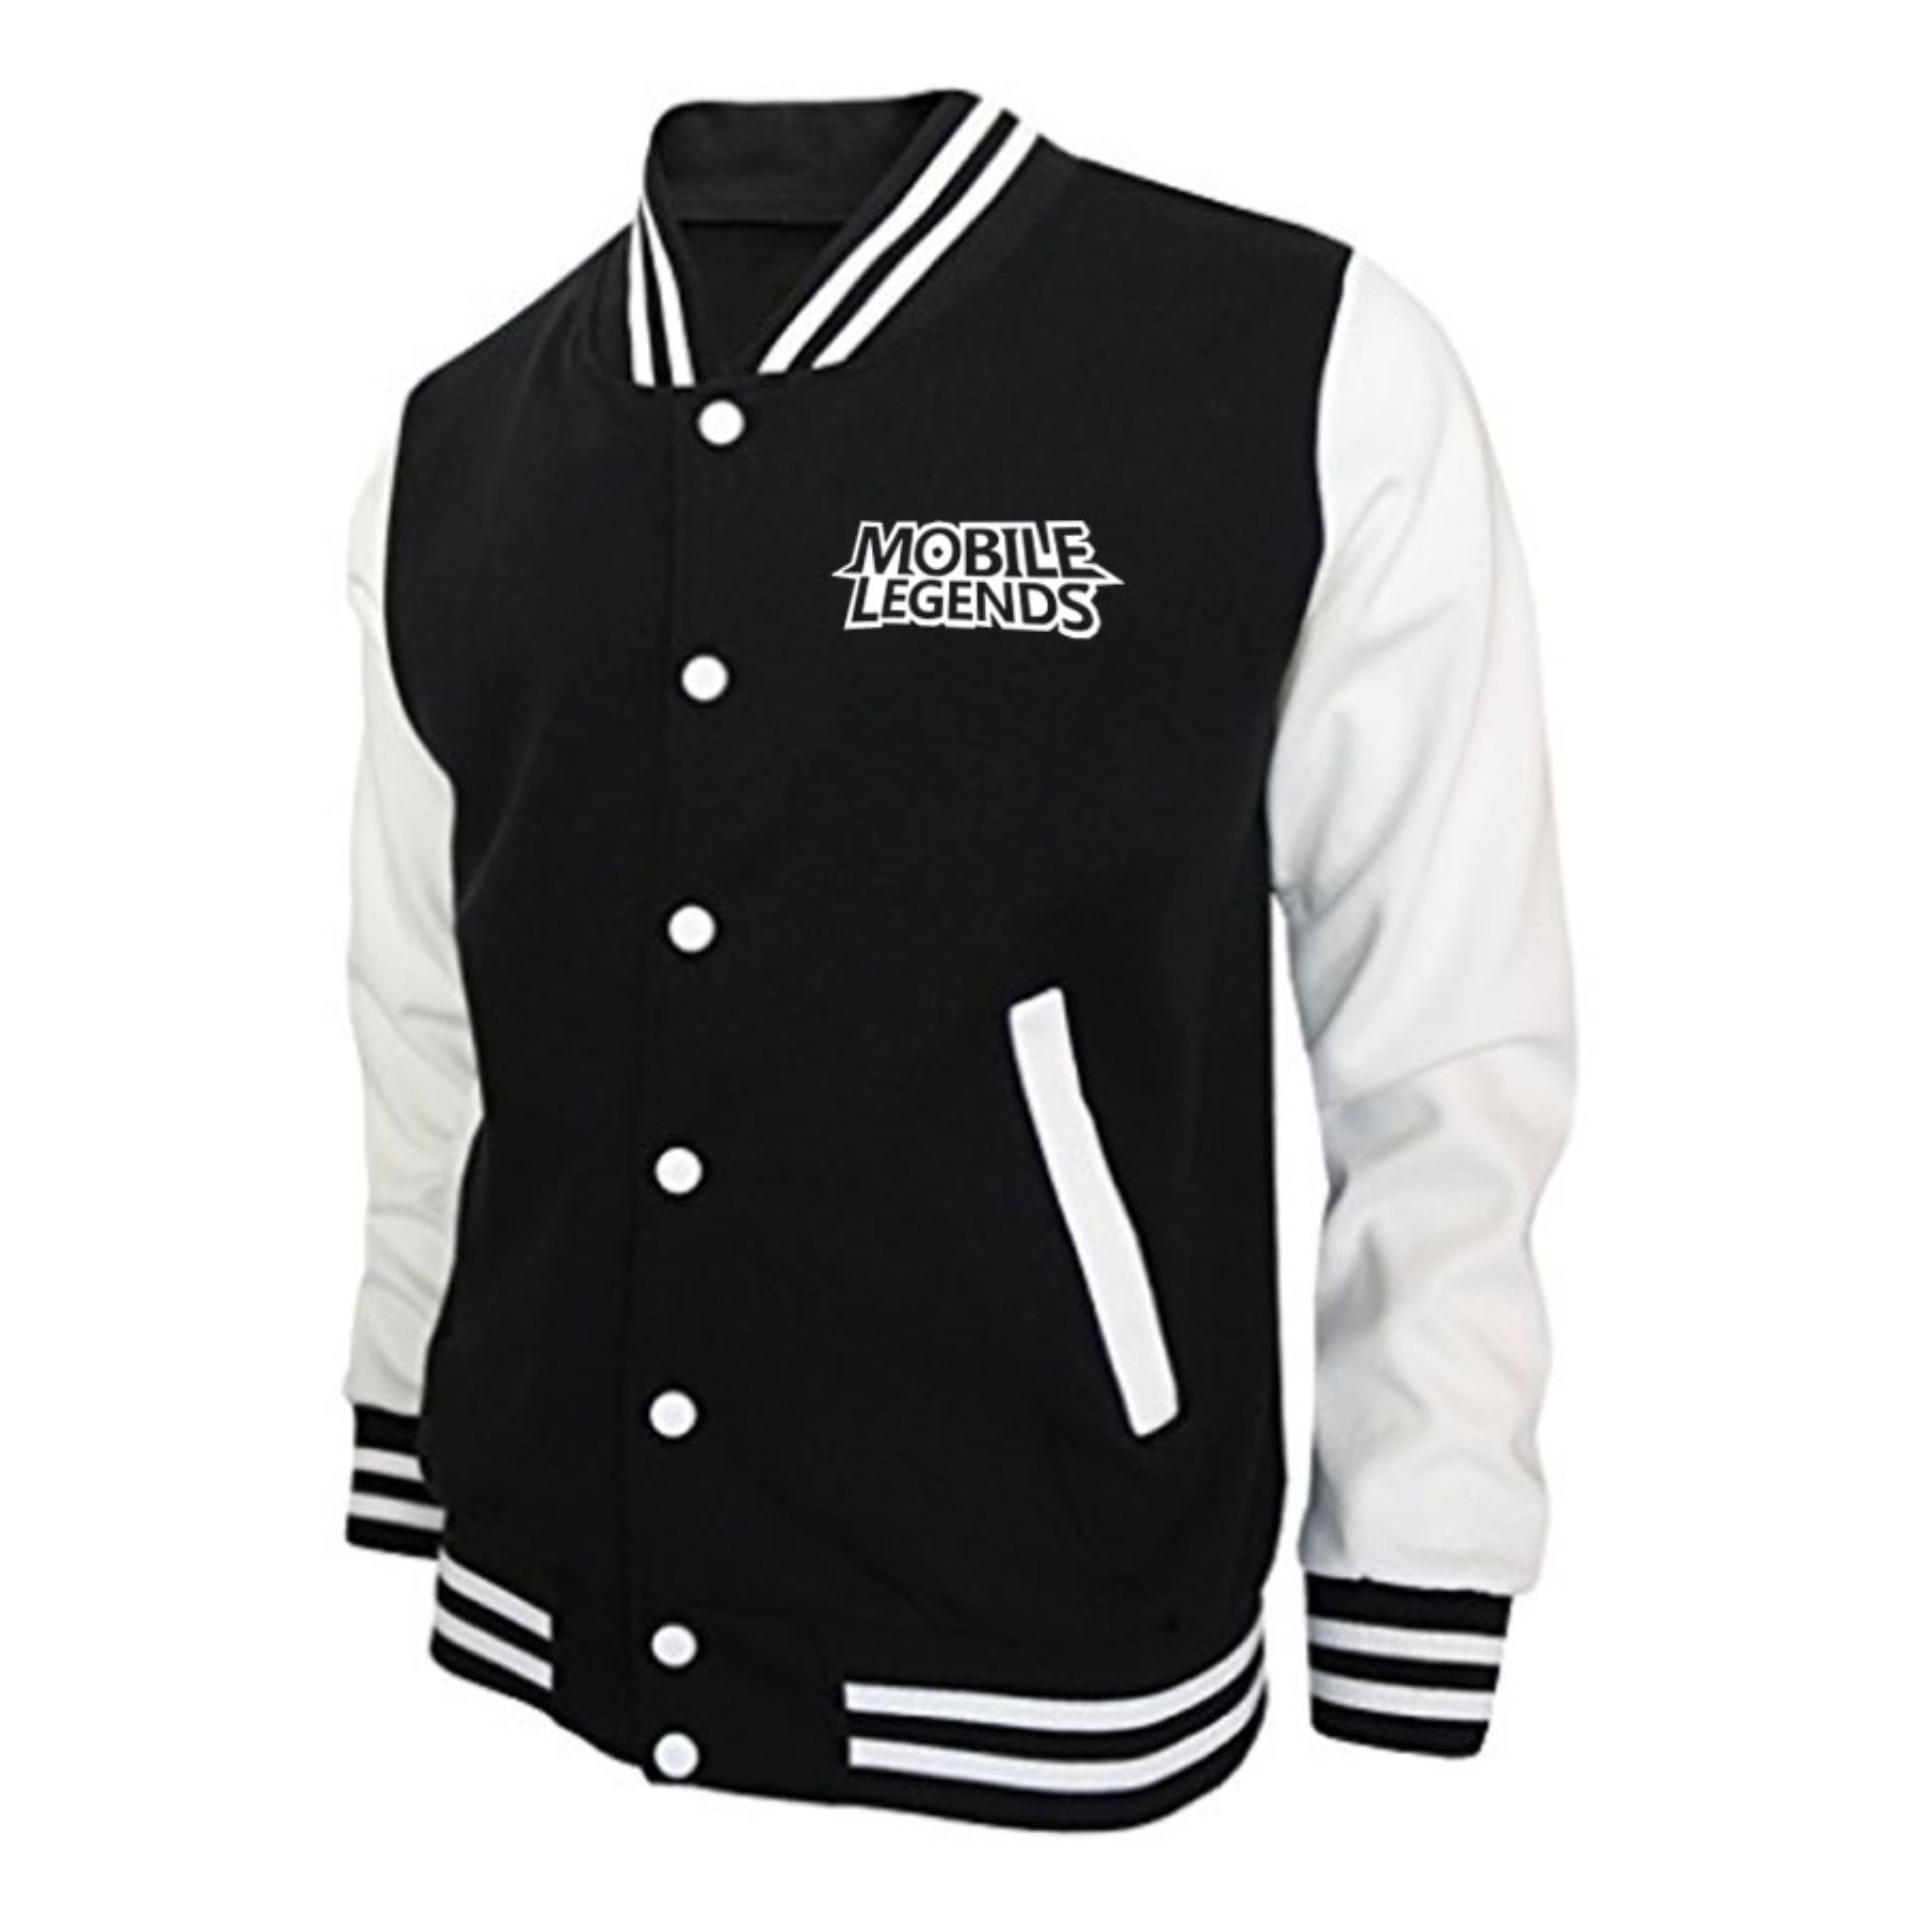 Harga Just Cloth Jaket Baseball Varsity Gaming Mobile Legends Just Cloth Original